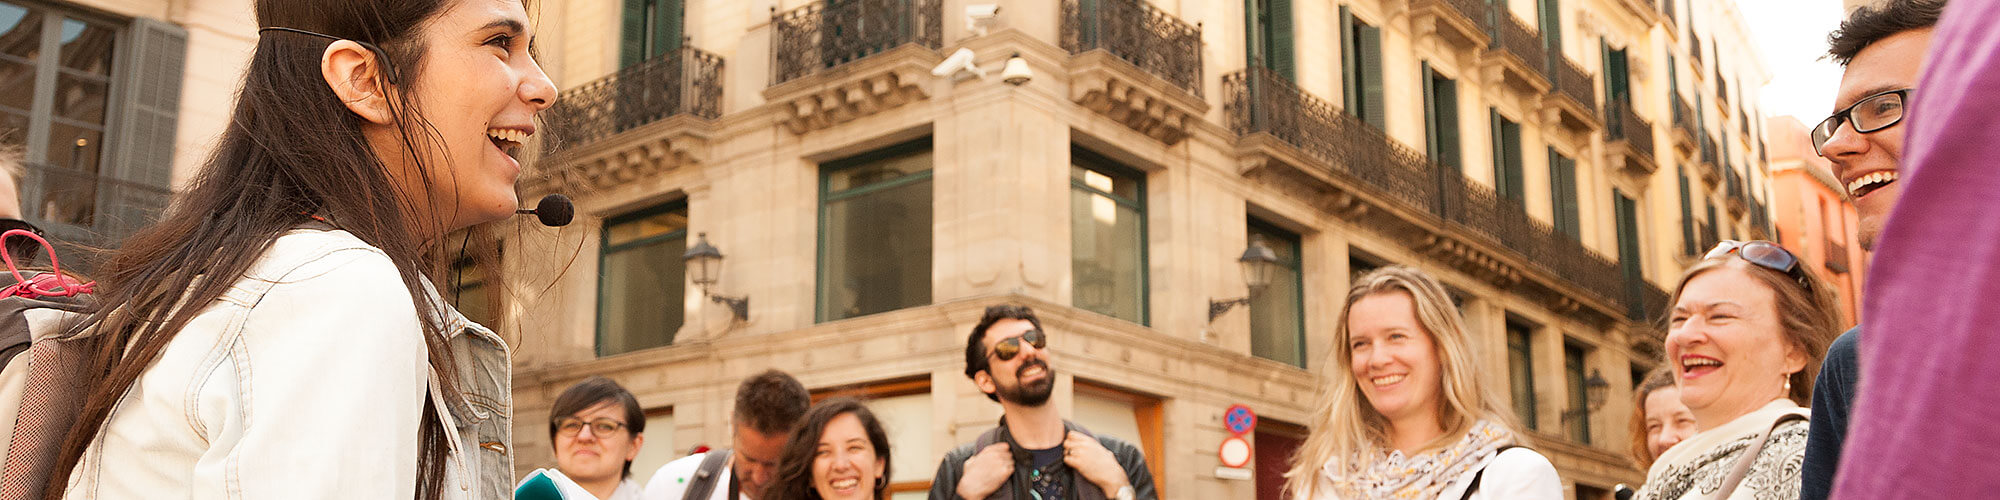 free walking tours barcelona - Pictures Of Tours